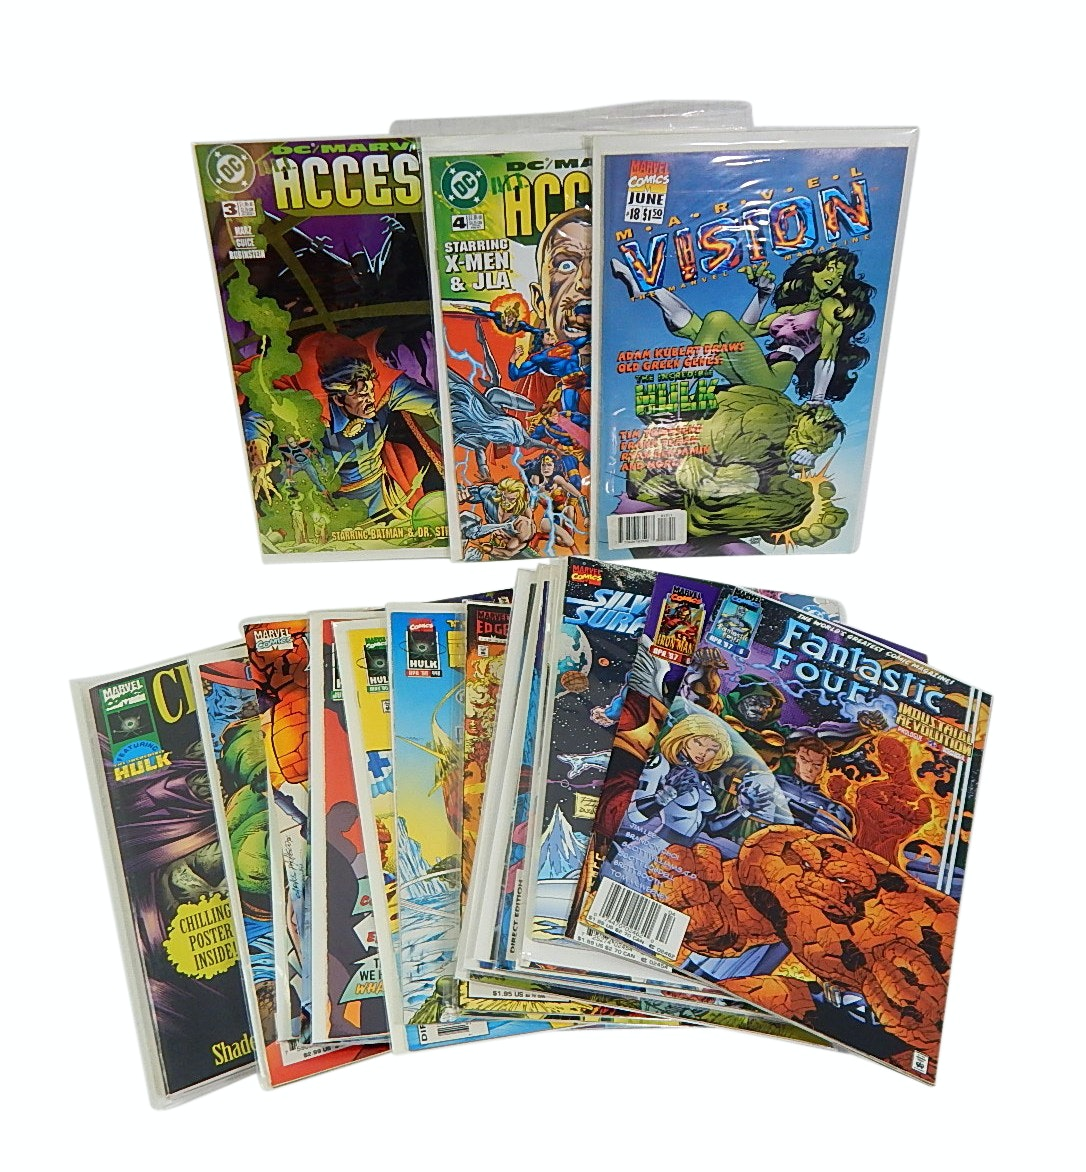 1990s Marvel and DC Comics with Fantastic Four, Iron Man - 22 Count Lot